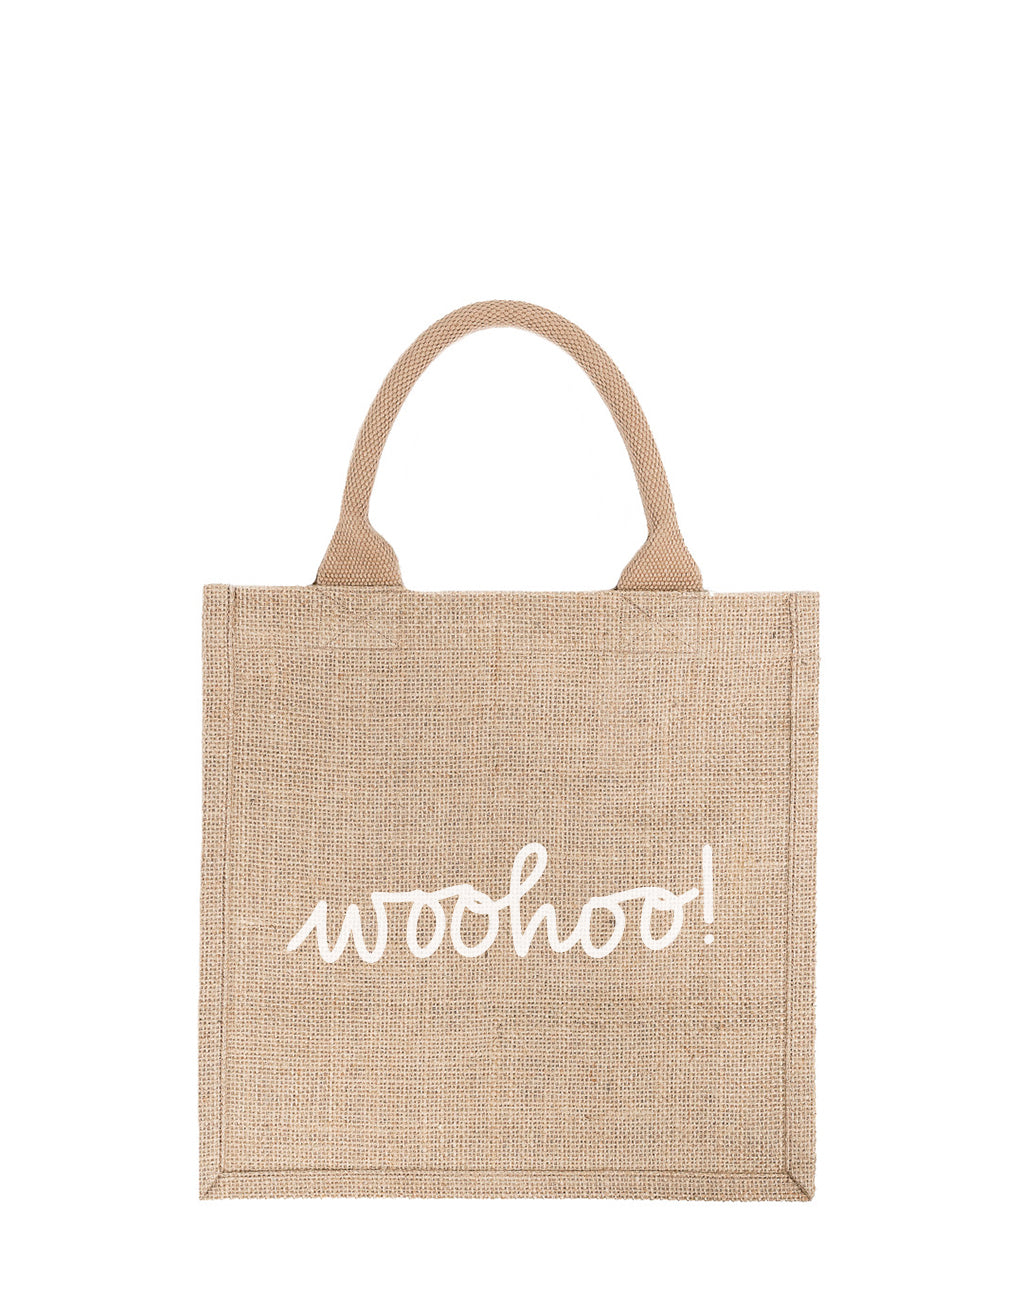 Large Woohoo! Reusable Gift Tote In White Font | The Little Market